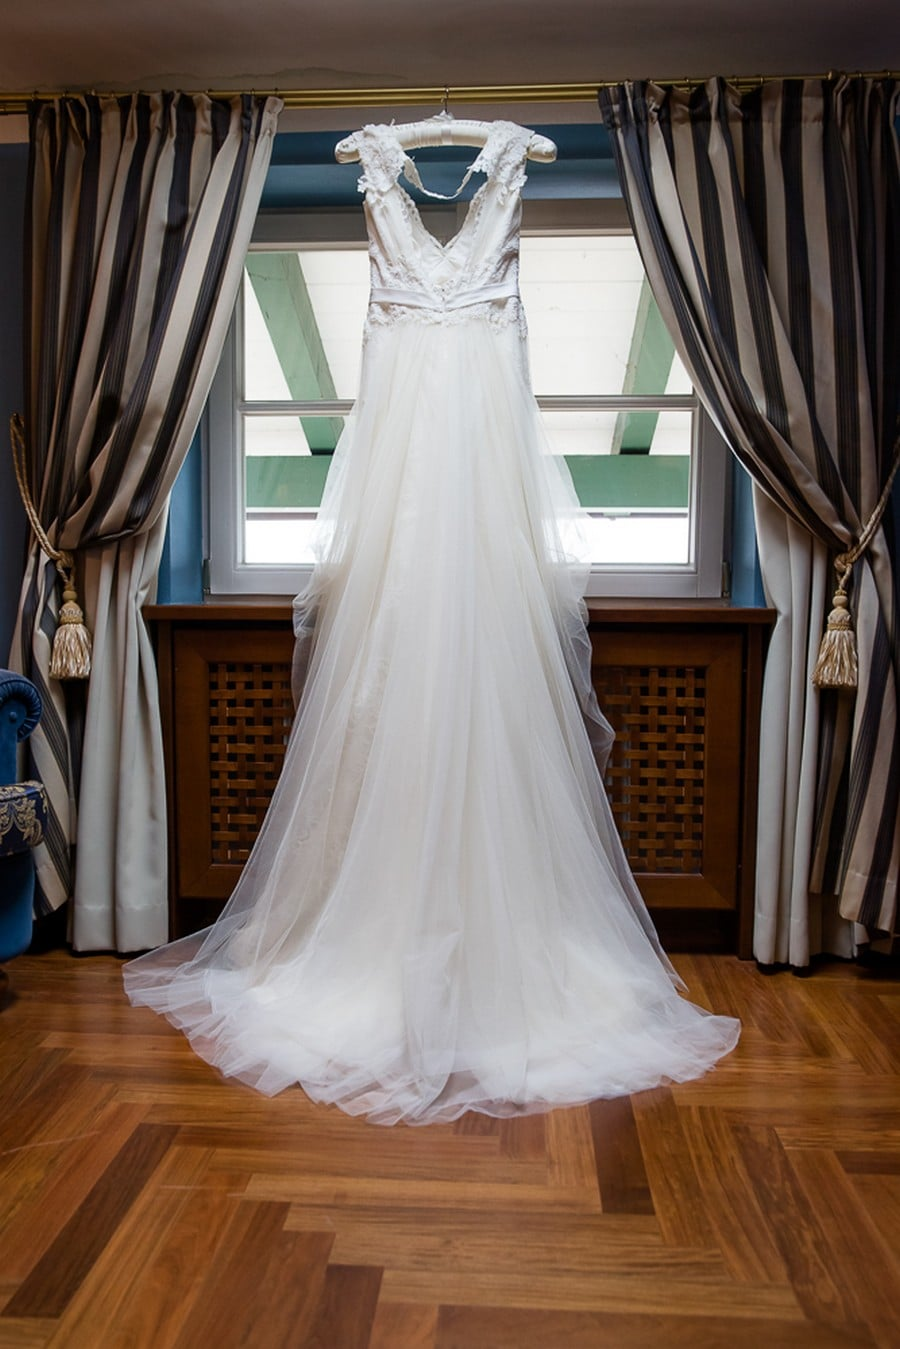 Fließendes Boho-Brautkleid von The White Dress Company